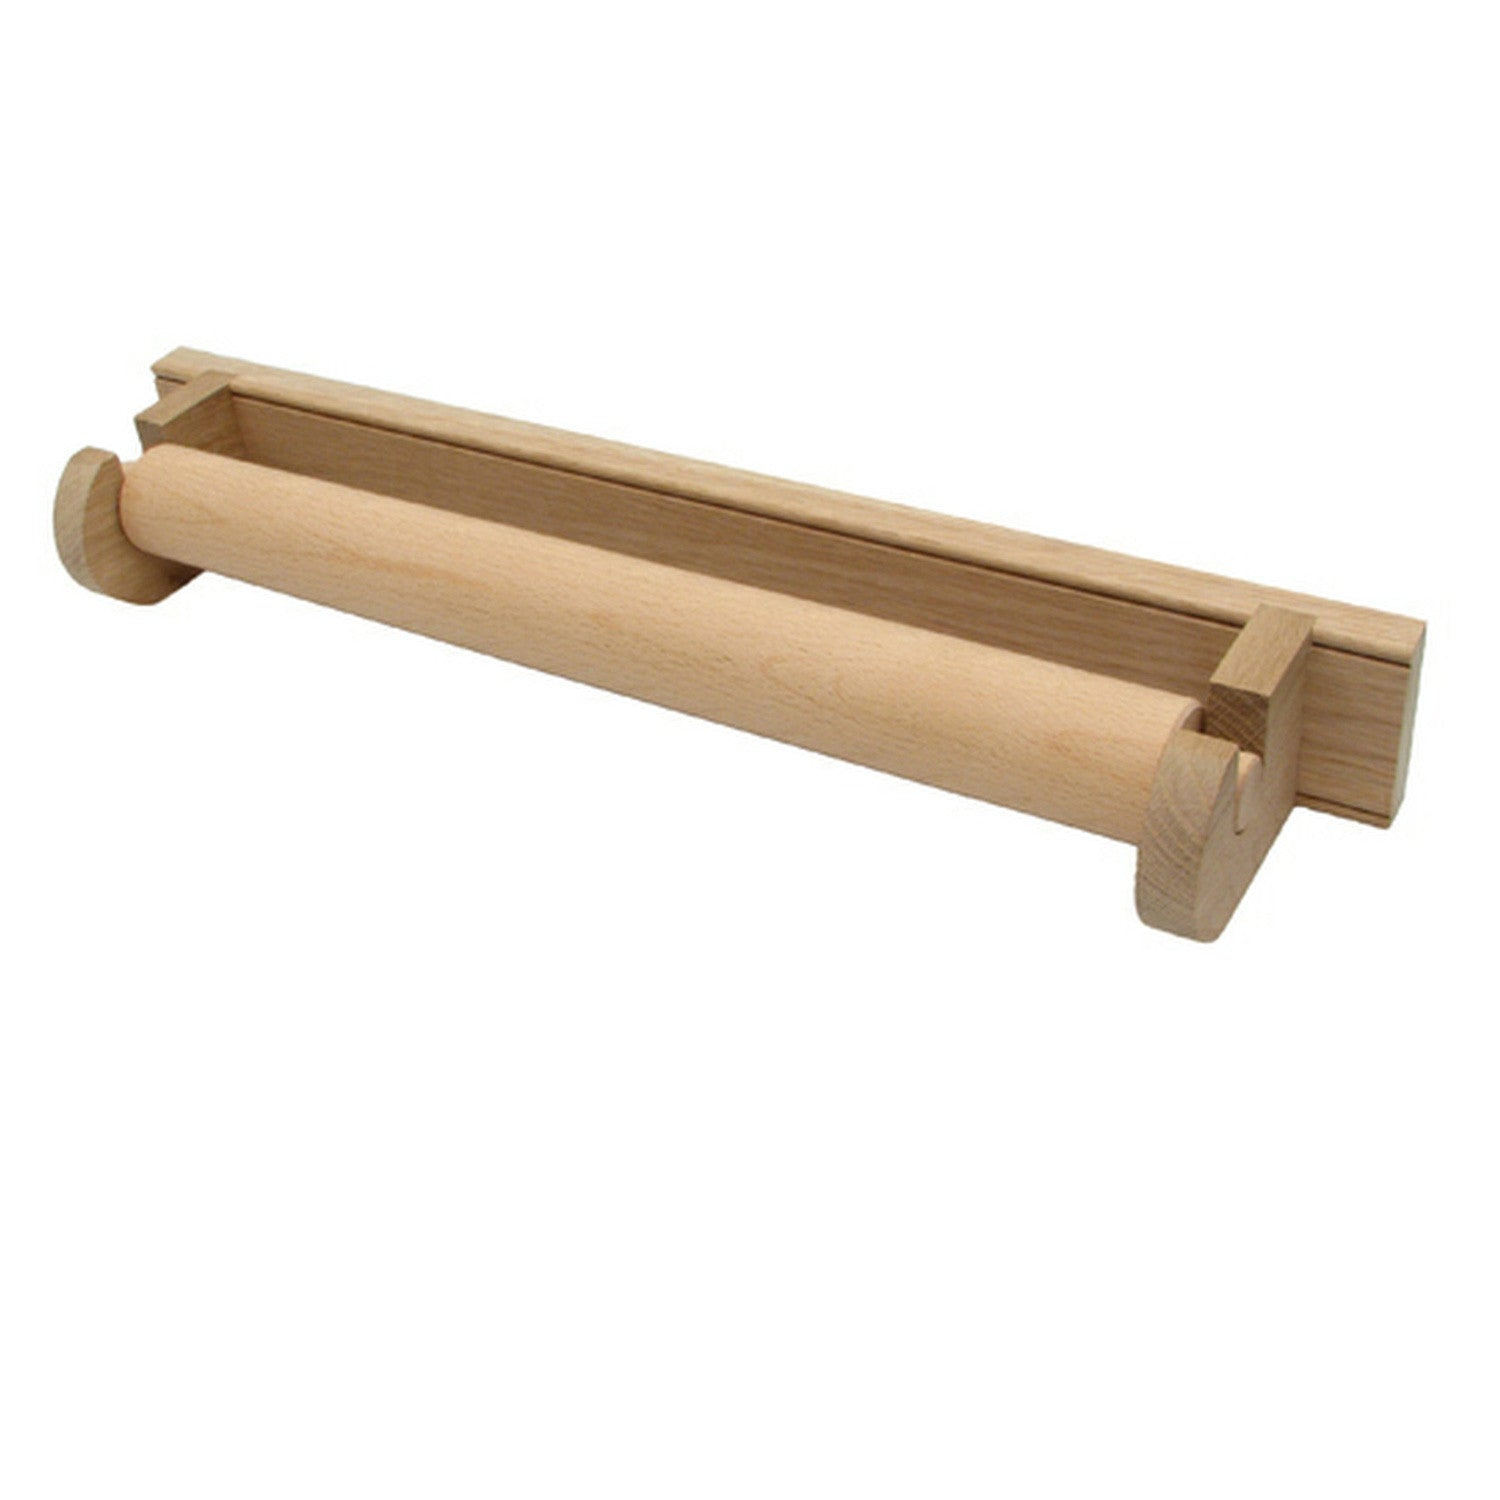 Solid Wood Roller Towel Rail Inchyra Home